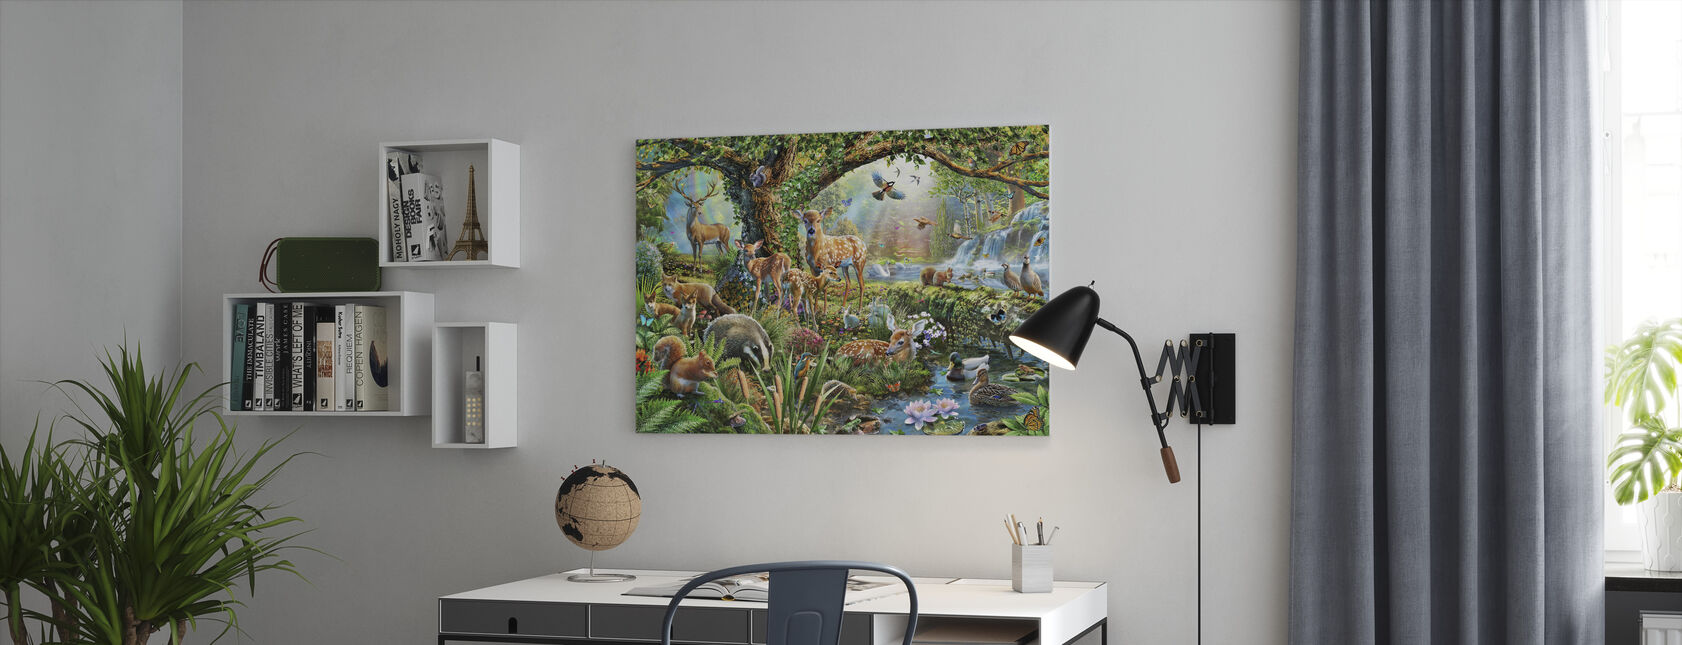 Woodland Creatures - Canvas print - Office